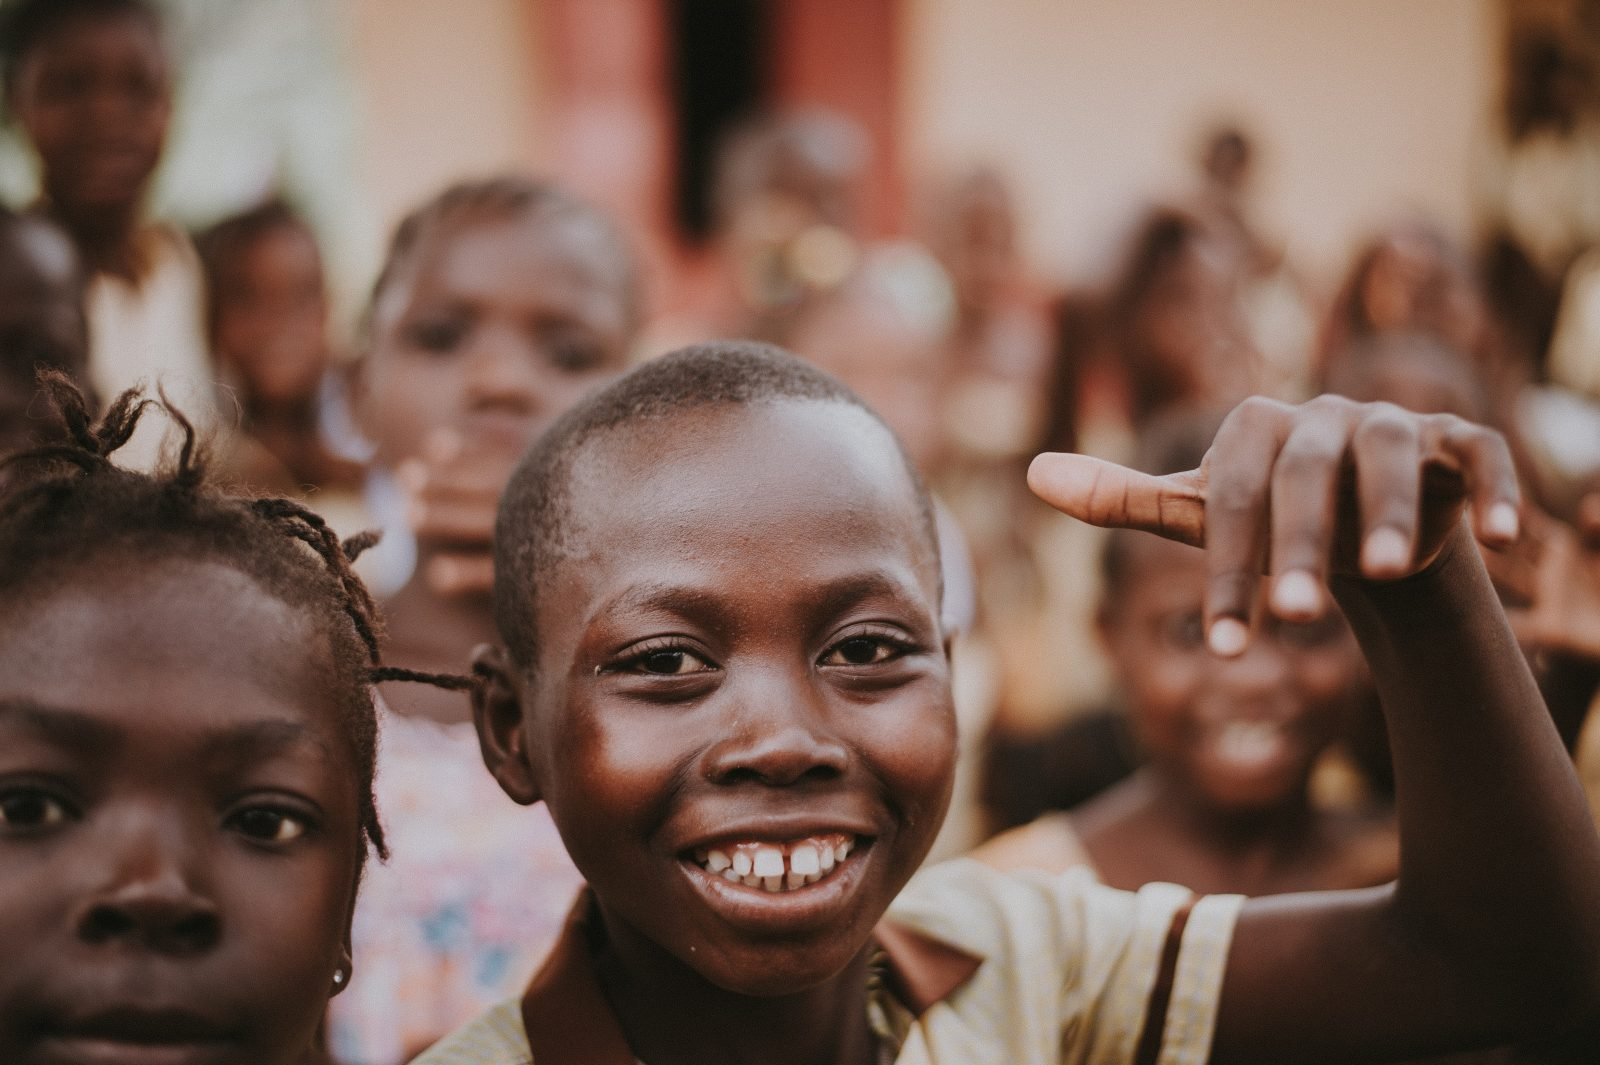 African children crowding and smiling. This image is different from the representation of Africa typically shown in the media